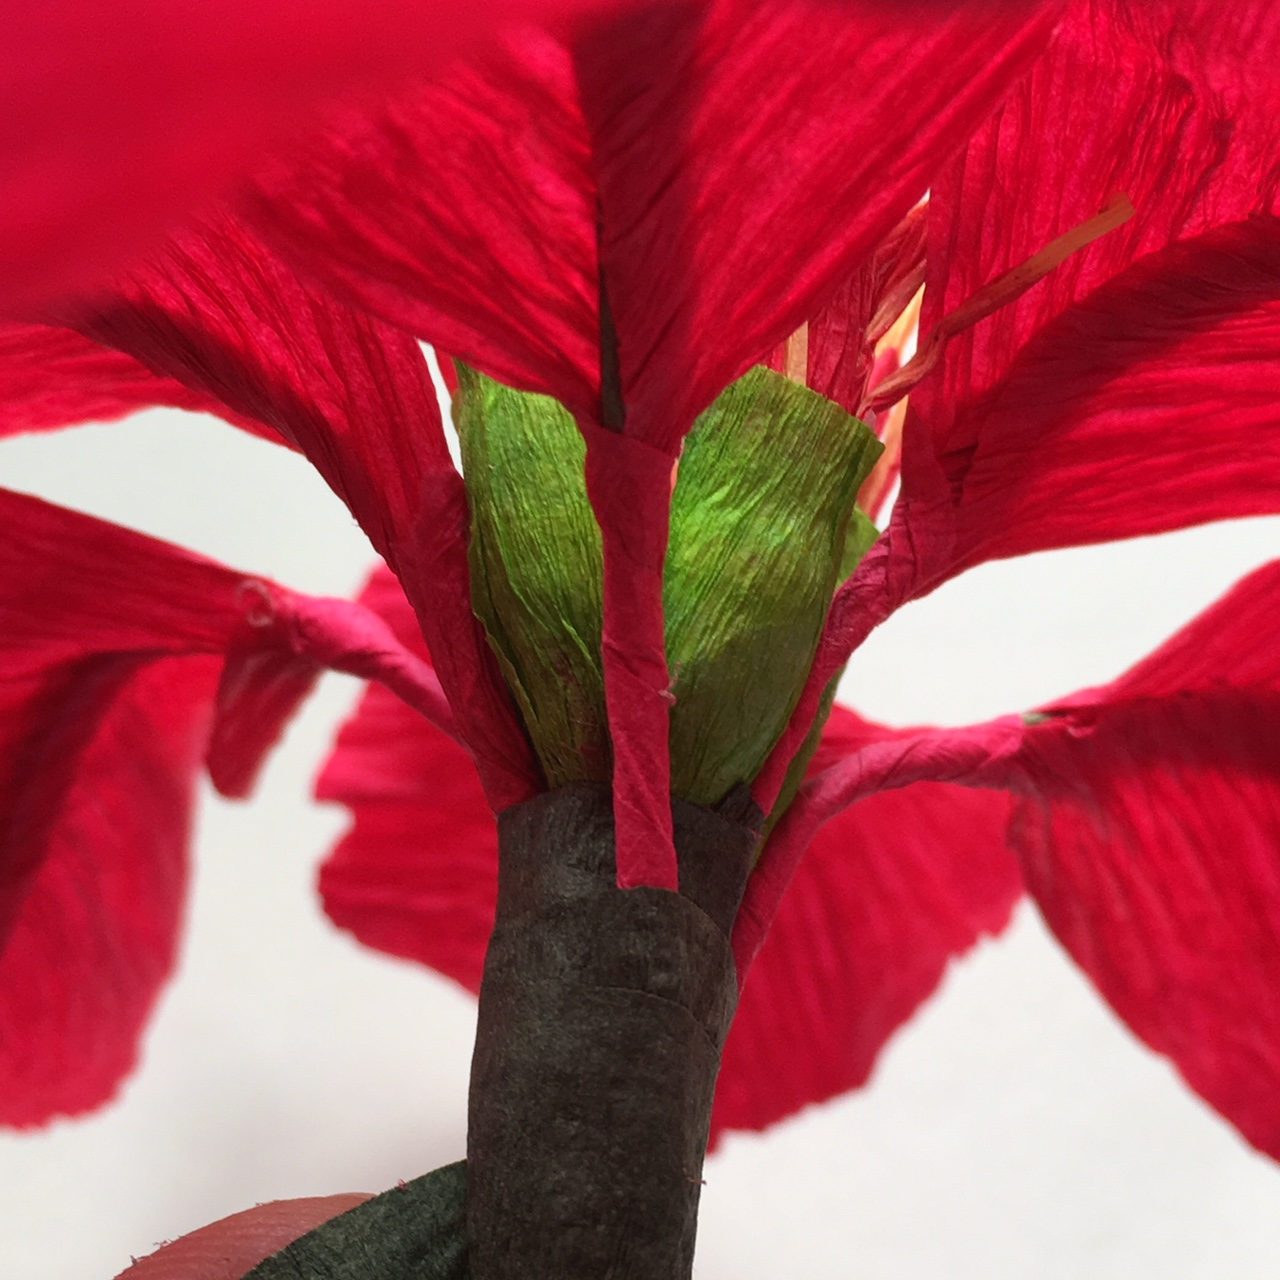 making crepe paper Poinsettia for Christmas gift - making the stem and gluing the leaves